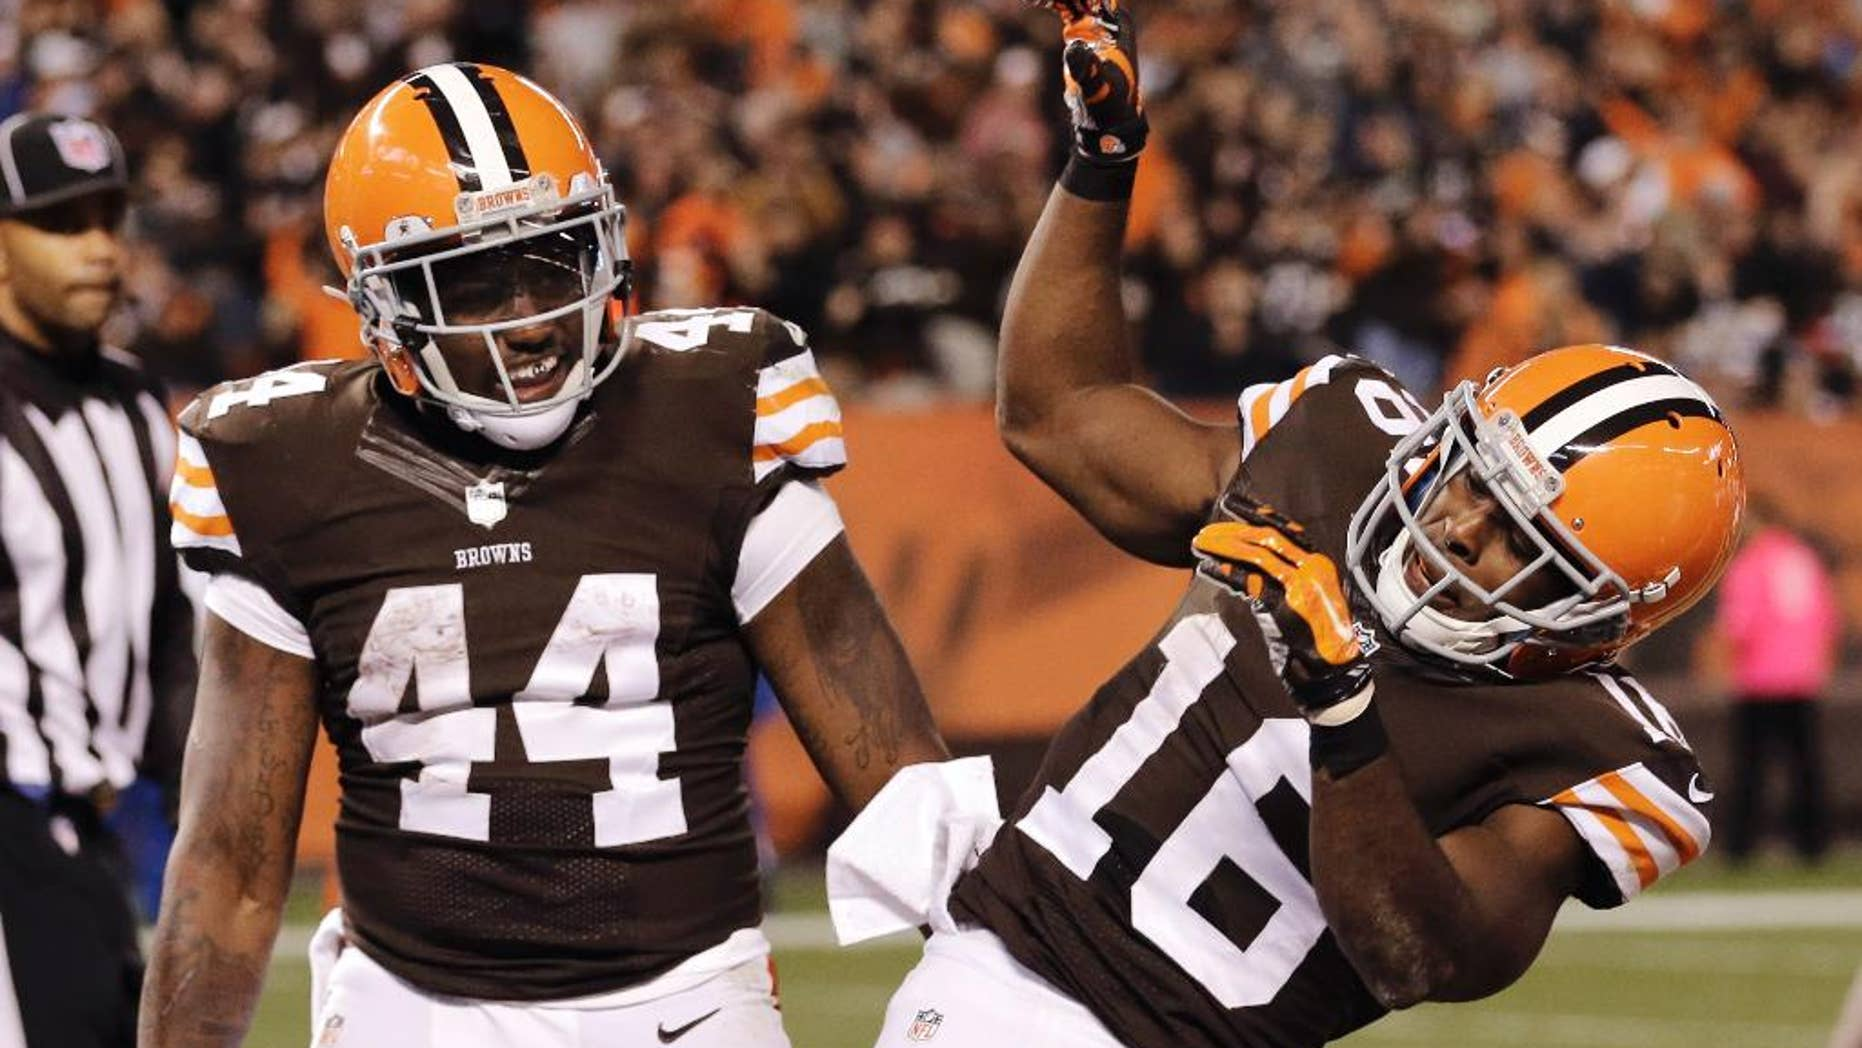 Cleveland Browns wide receiver Andrew Hawkins (16) celebrates running back Ben Tate's (44) 5-yard touchdown run in the fourth quarter of an NFL football game against the Oakland Raiders, Sunday, Oct. 26, 2014, in Cleveland. (AP Photo/Tony Dejak)